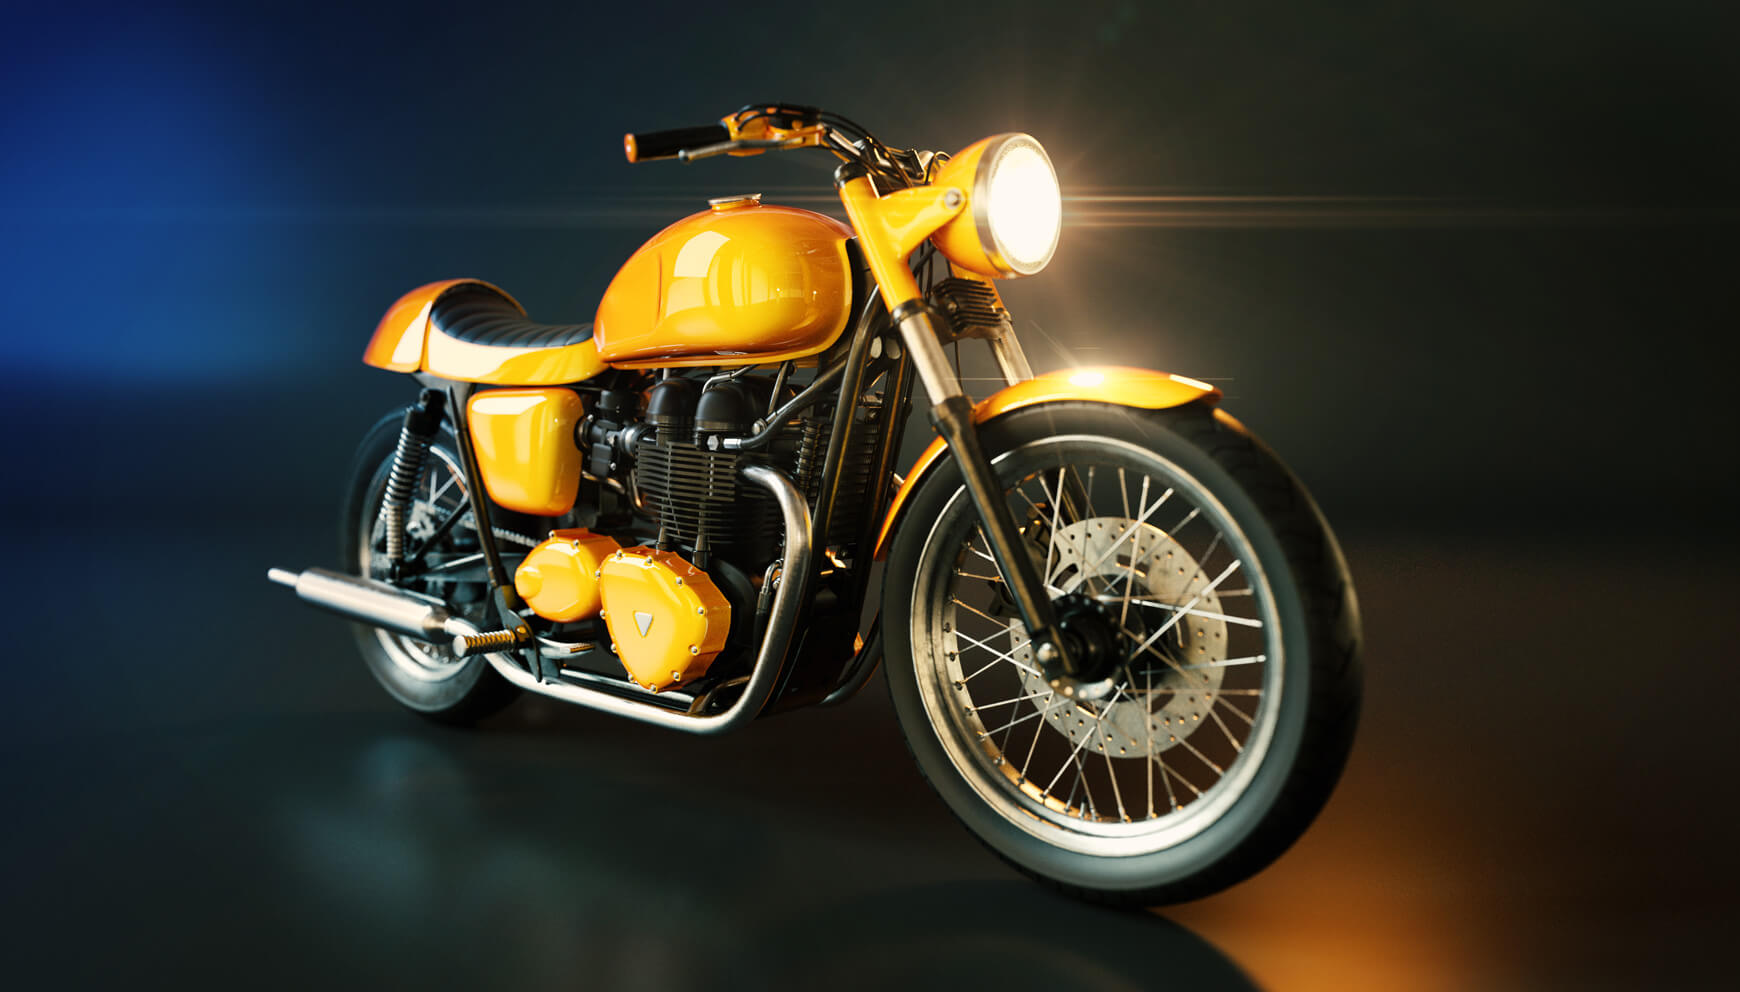 Cinema 4D 3D Model Free Motorcycle Texture Contest